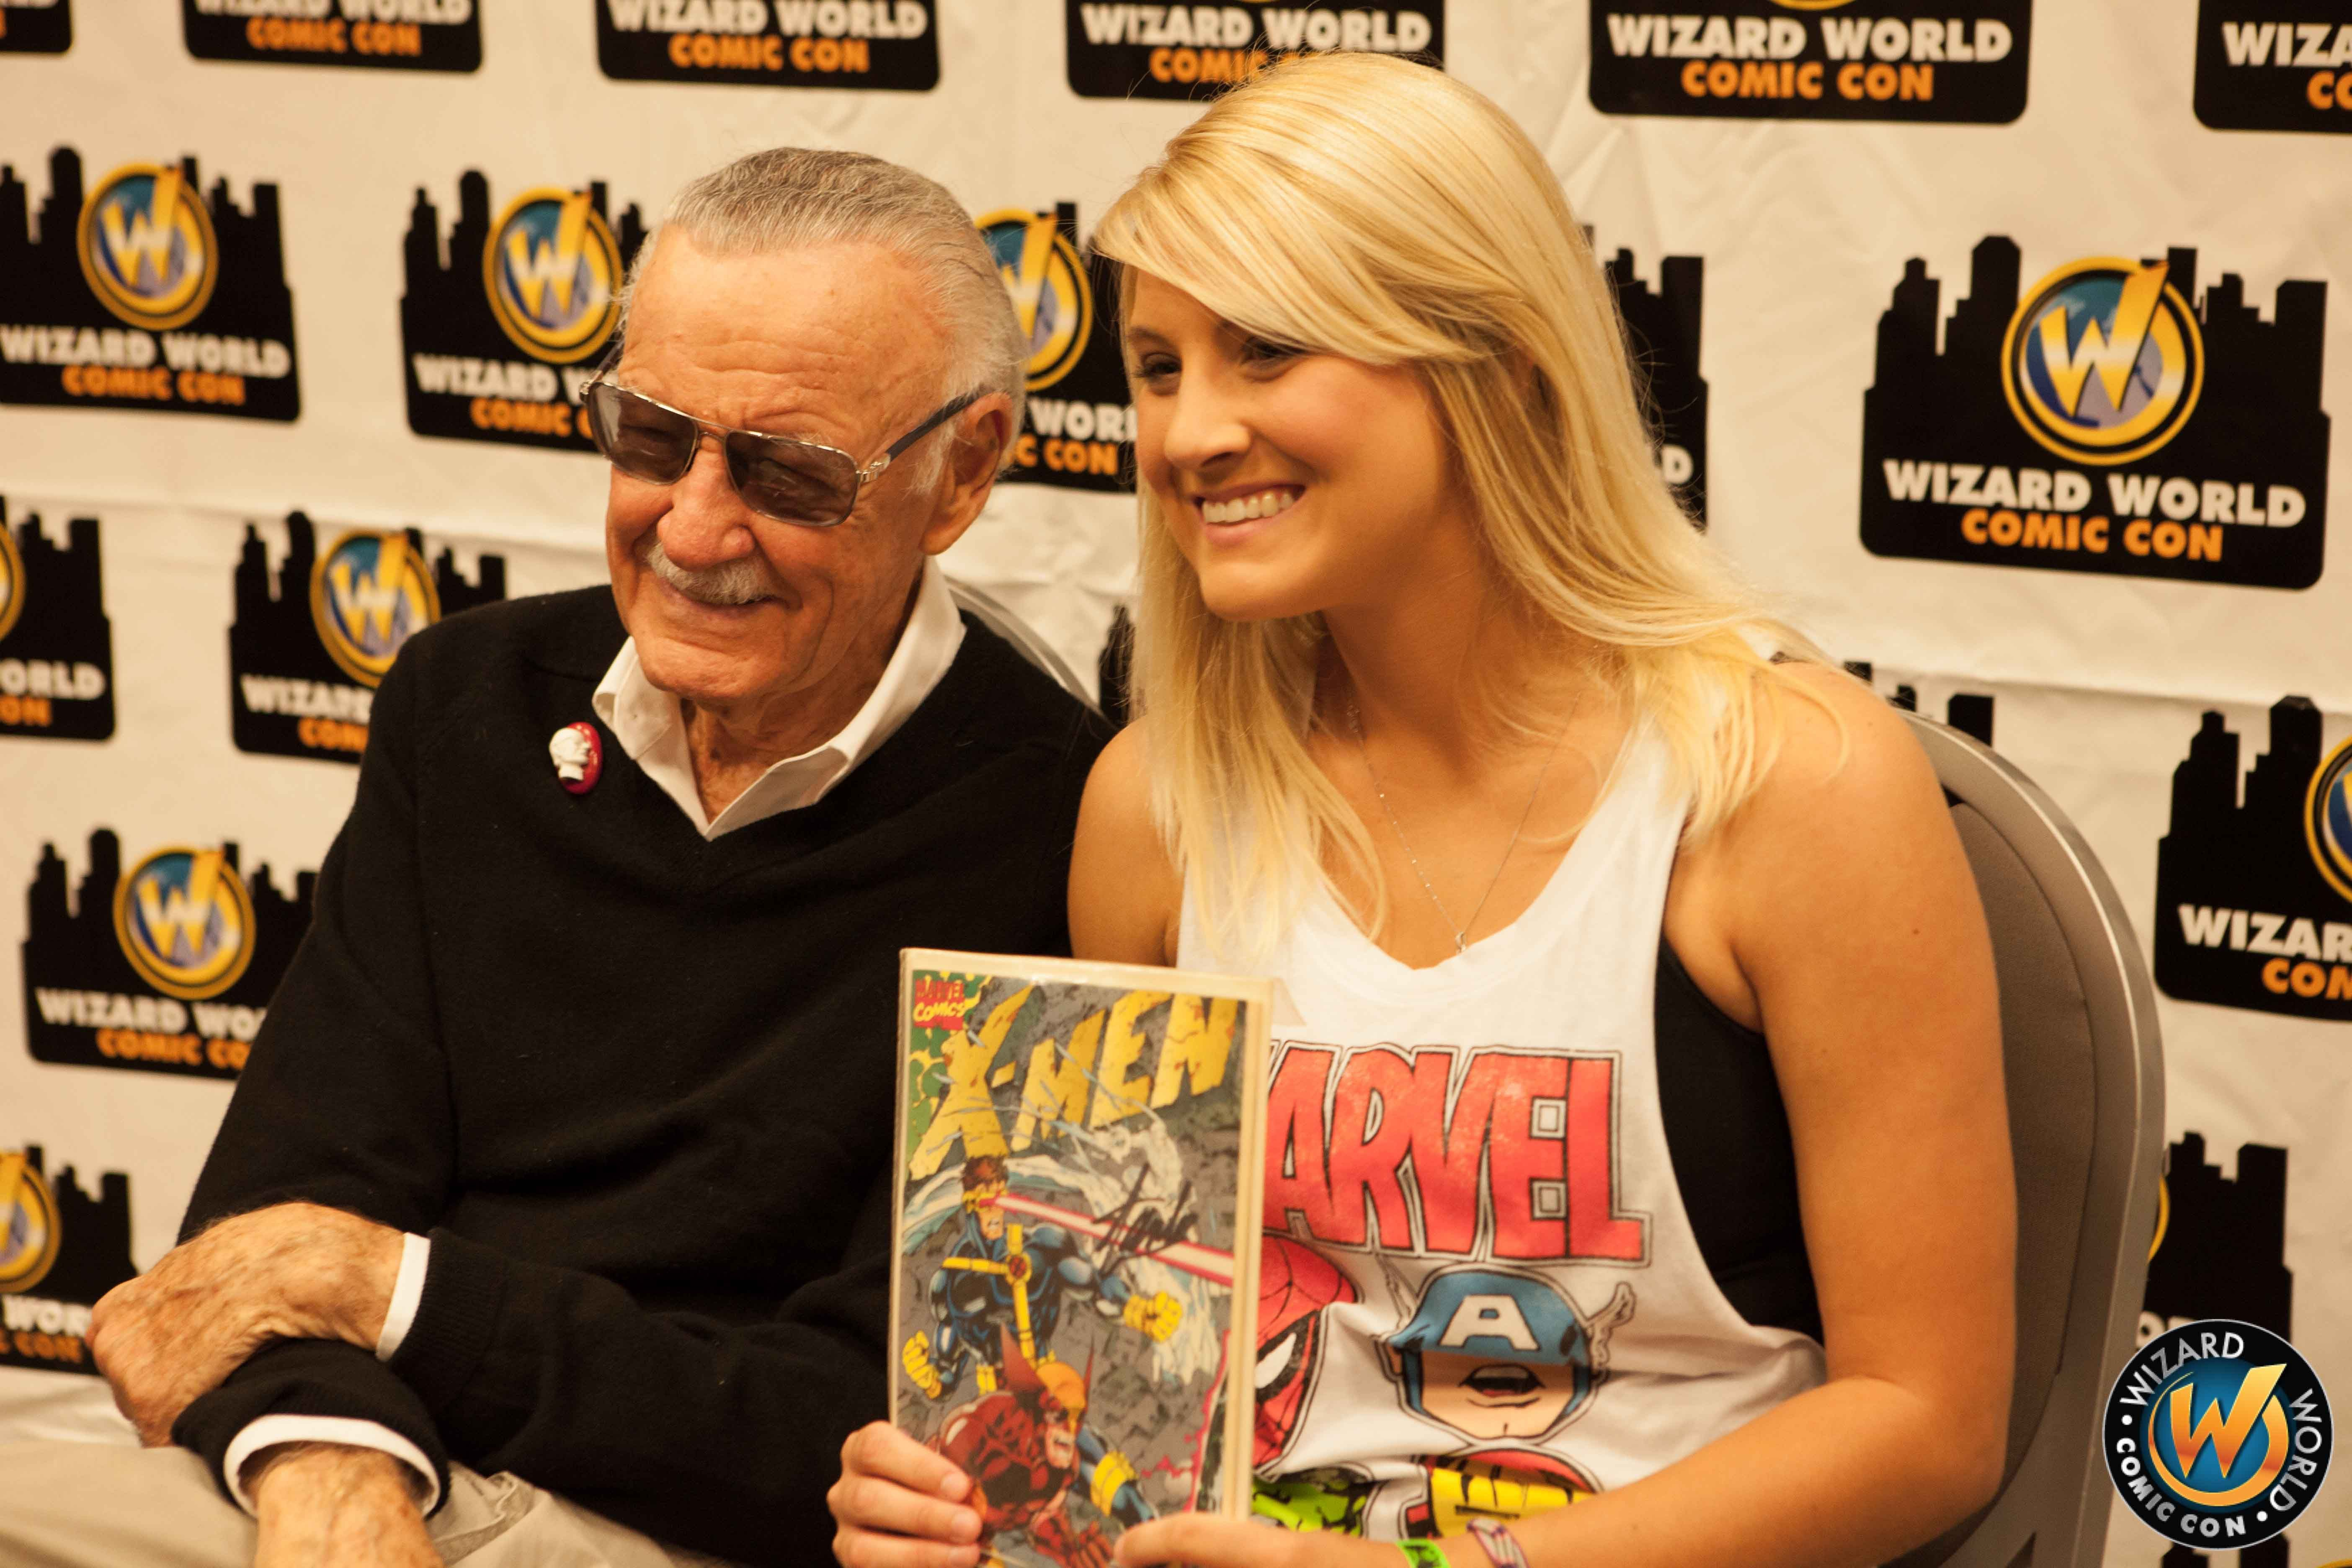 Bring your favorite comic and take a pic with Stan at #WizardWorld!! See us in Nashville 10/18-10/20 http://VIP.me/NashvilleComicCon